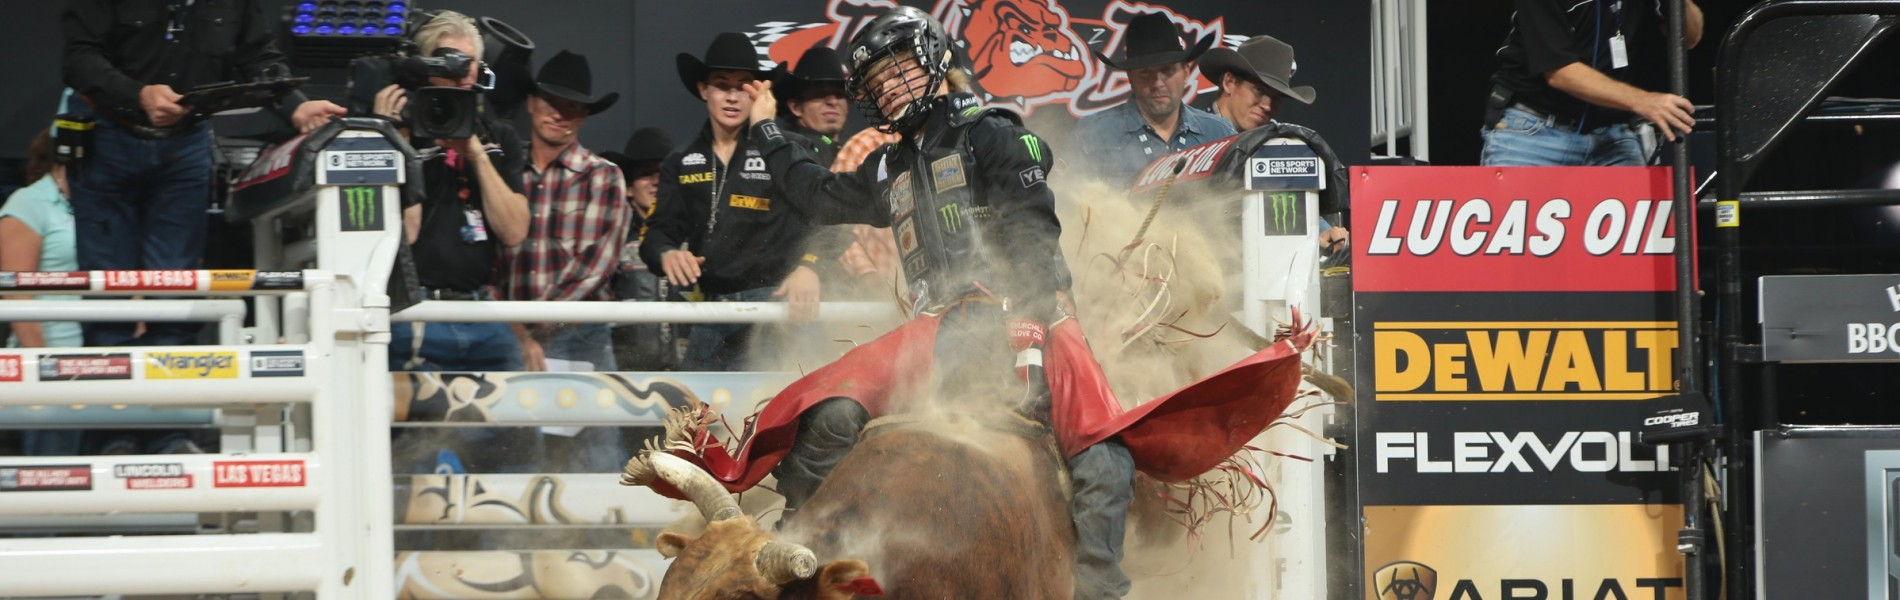 Derek Kolbaba attempts to ride Berger Bucking Bulls's Siouxper Stinger during the second round of the Built Ford Tough series PBR World Finals.